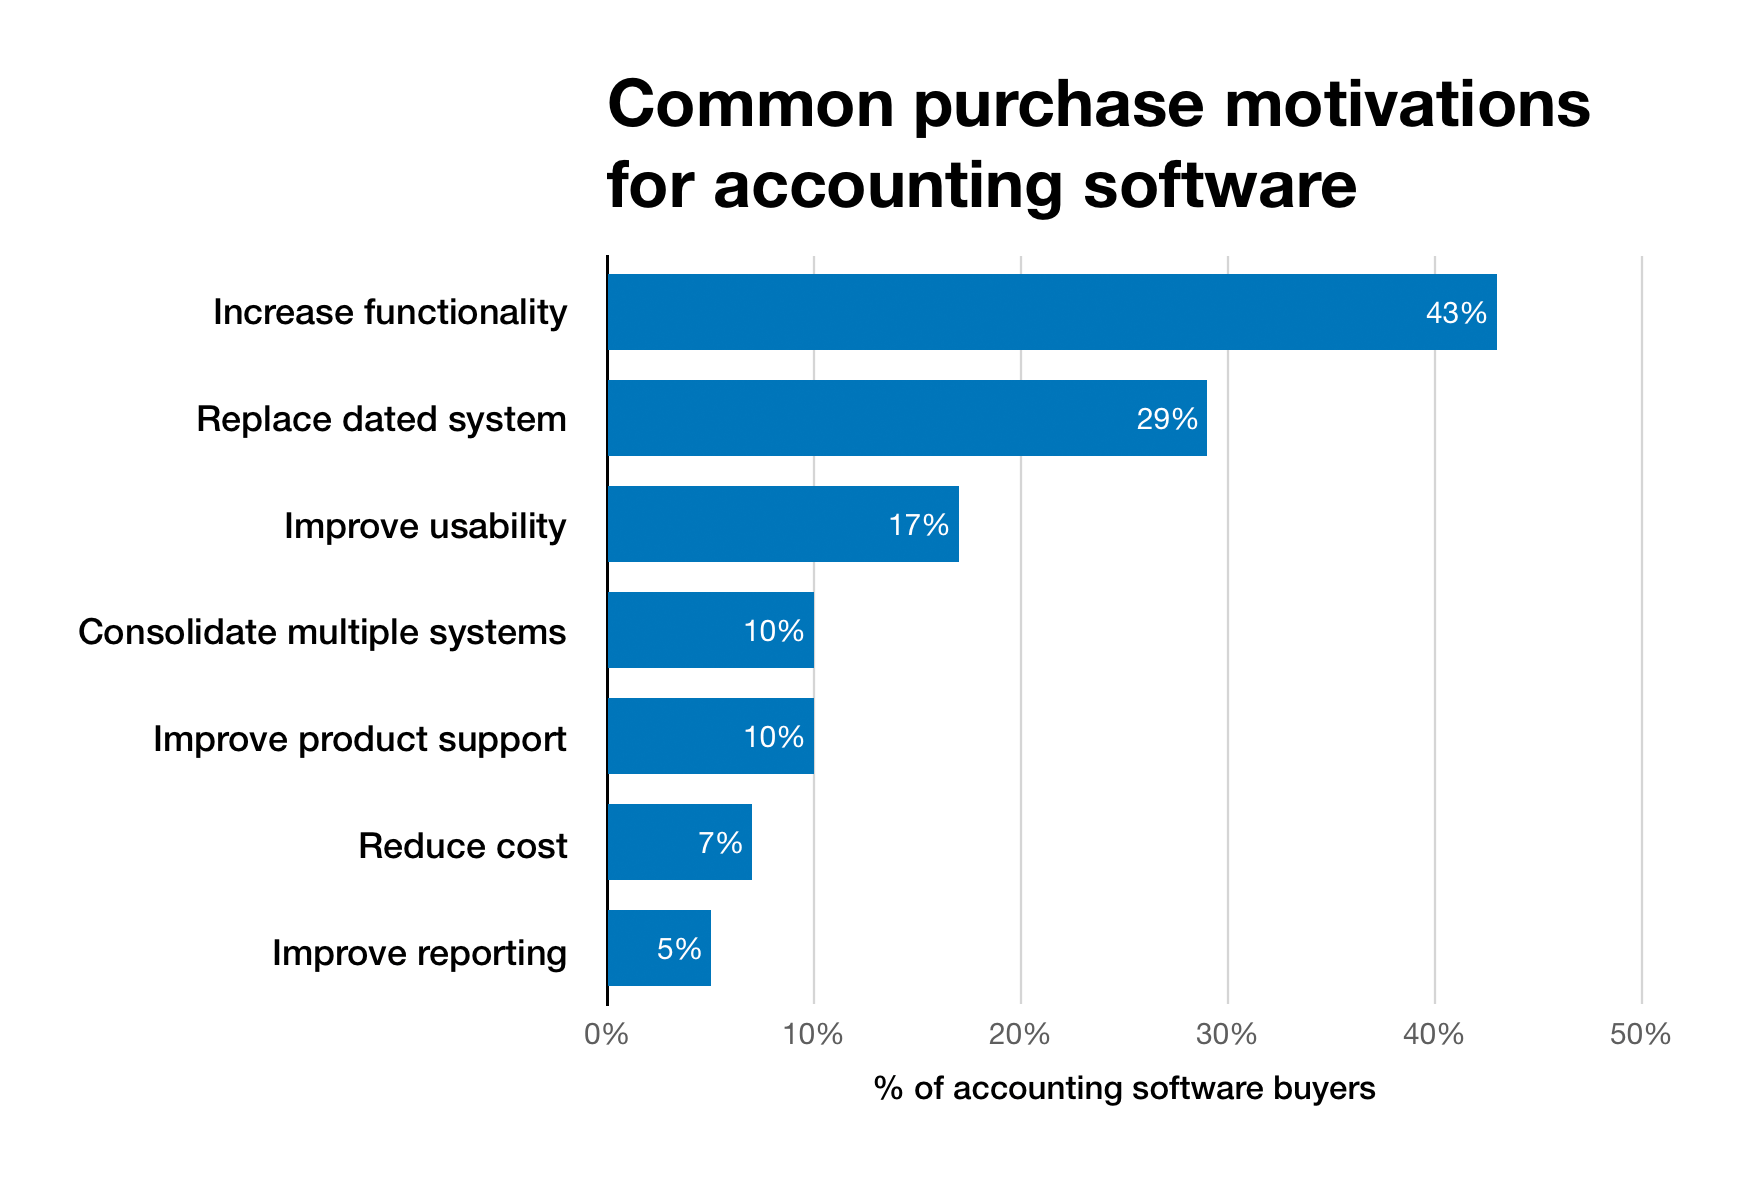 Chart of common purchase motivations for accounting software